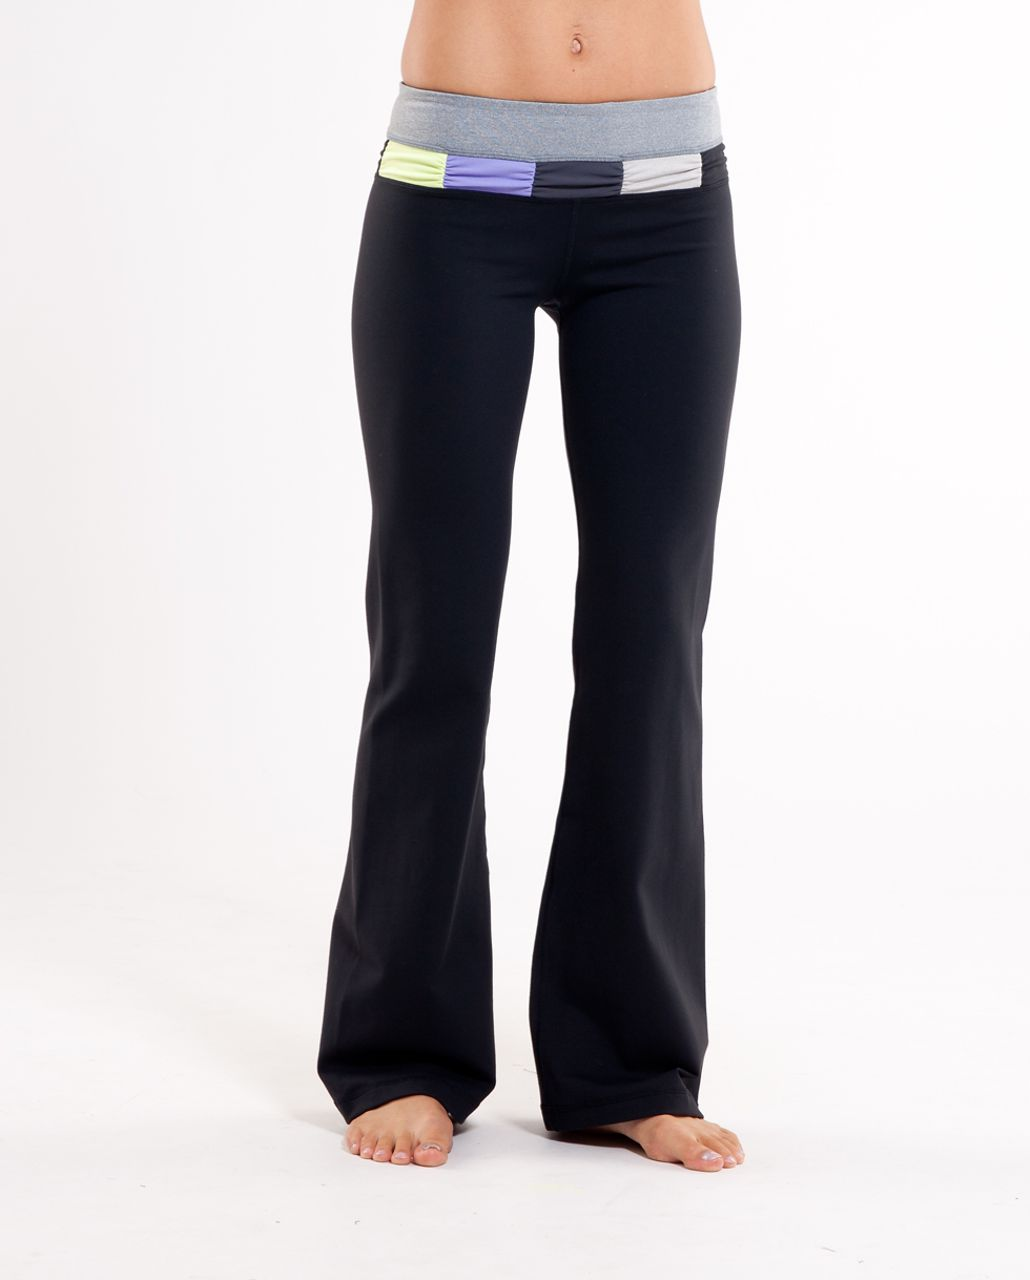 Lululemon Groove Pant (Regular) - Black /  Heathered Blurred Grey /  Quilt Summer 10